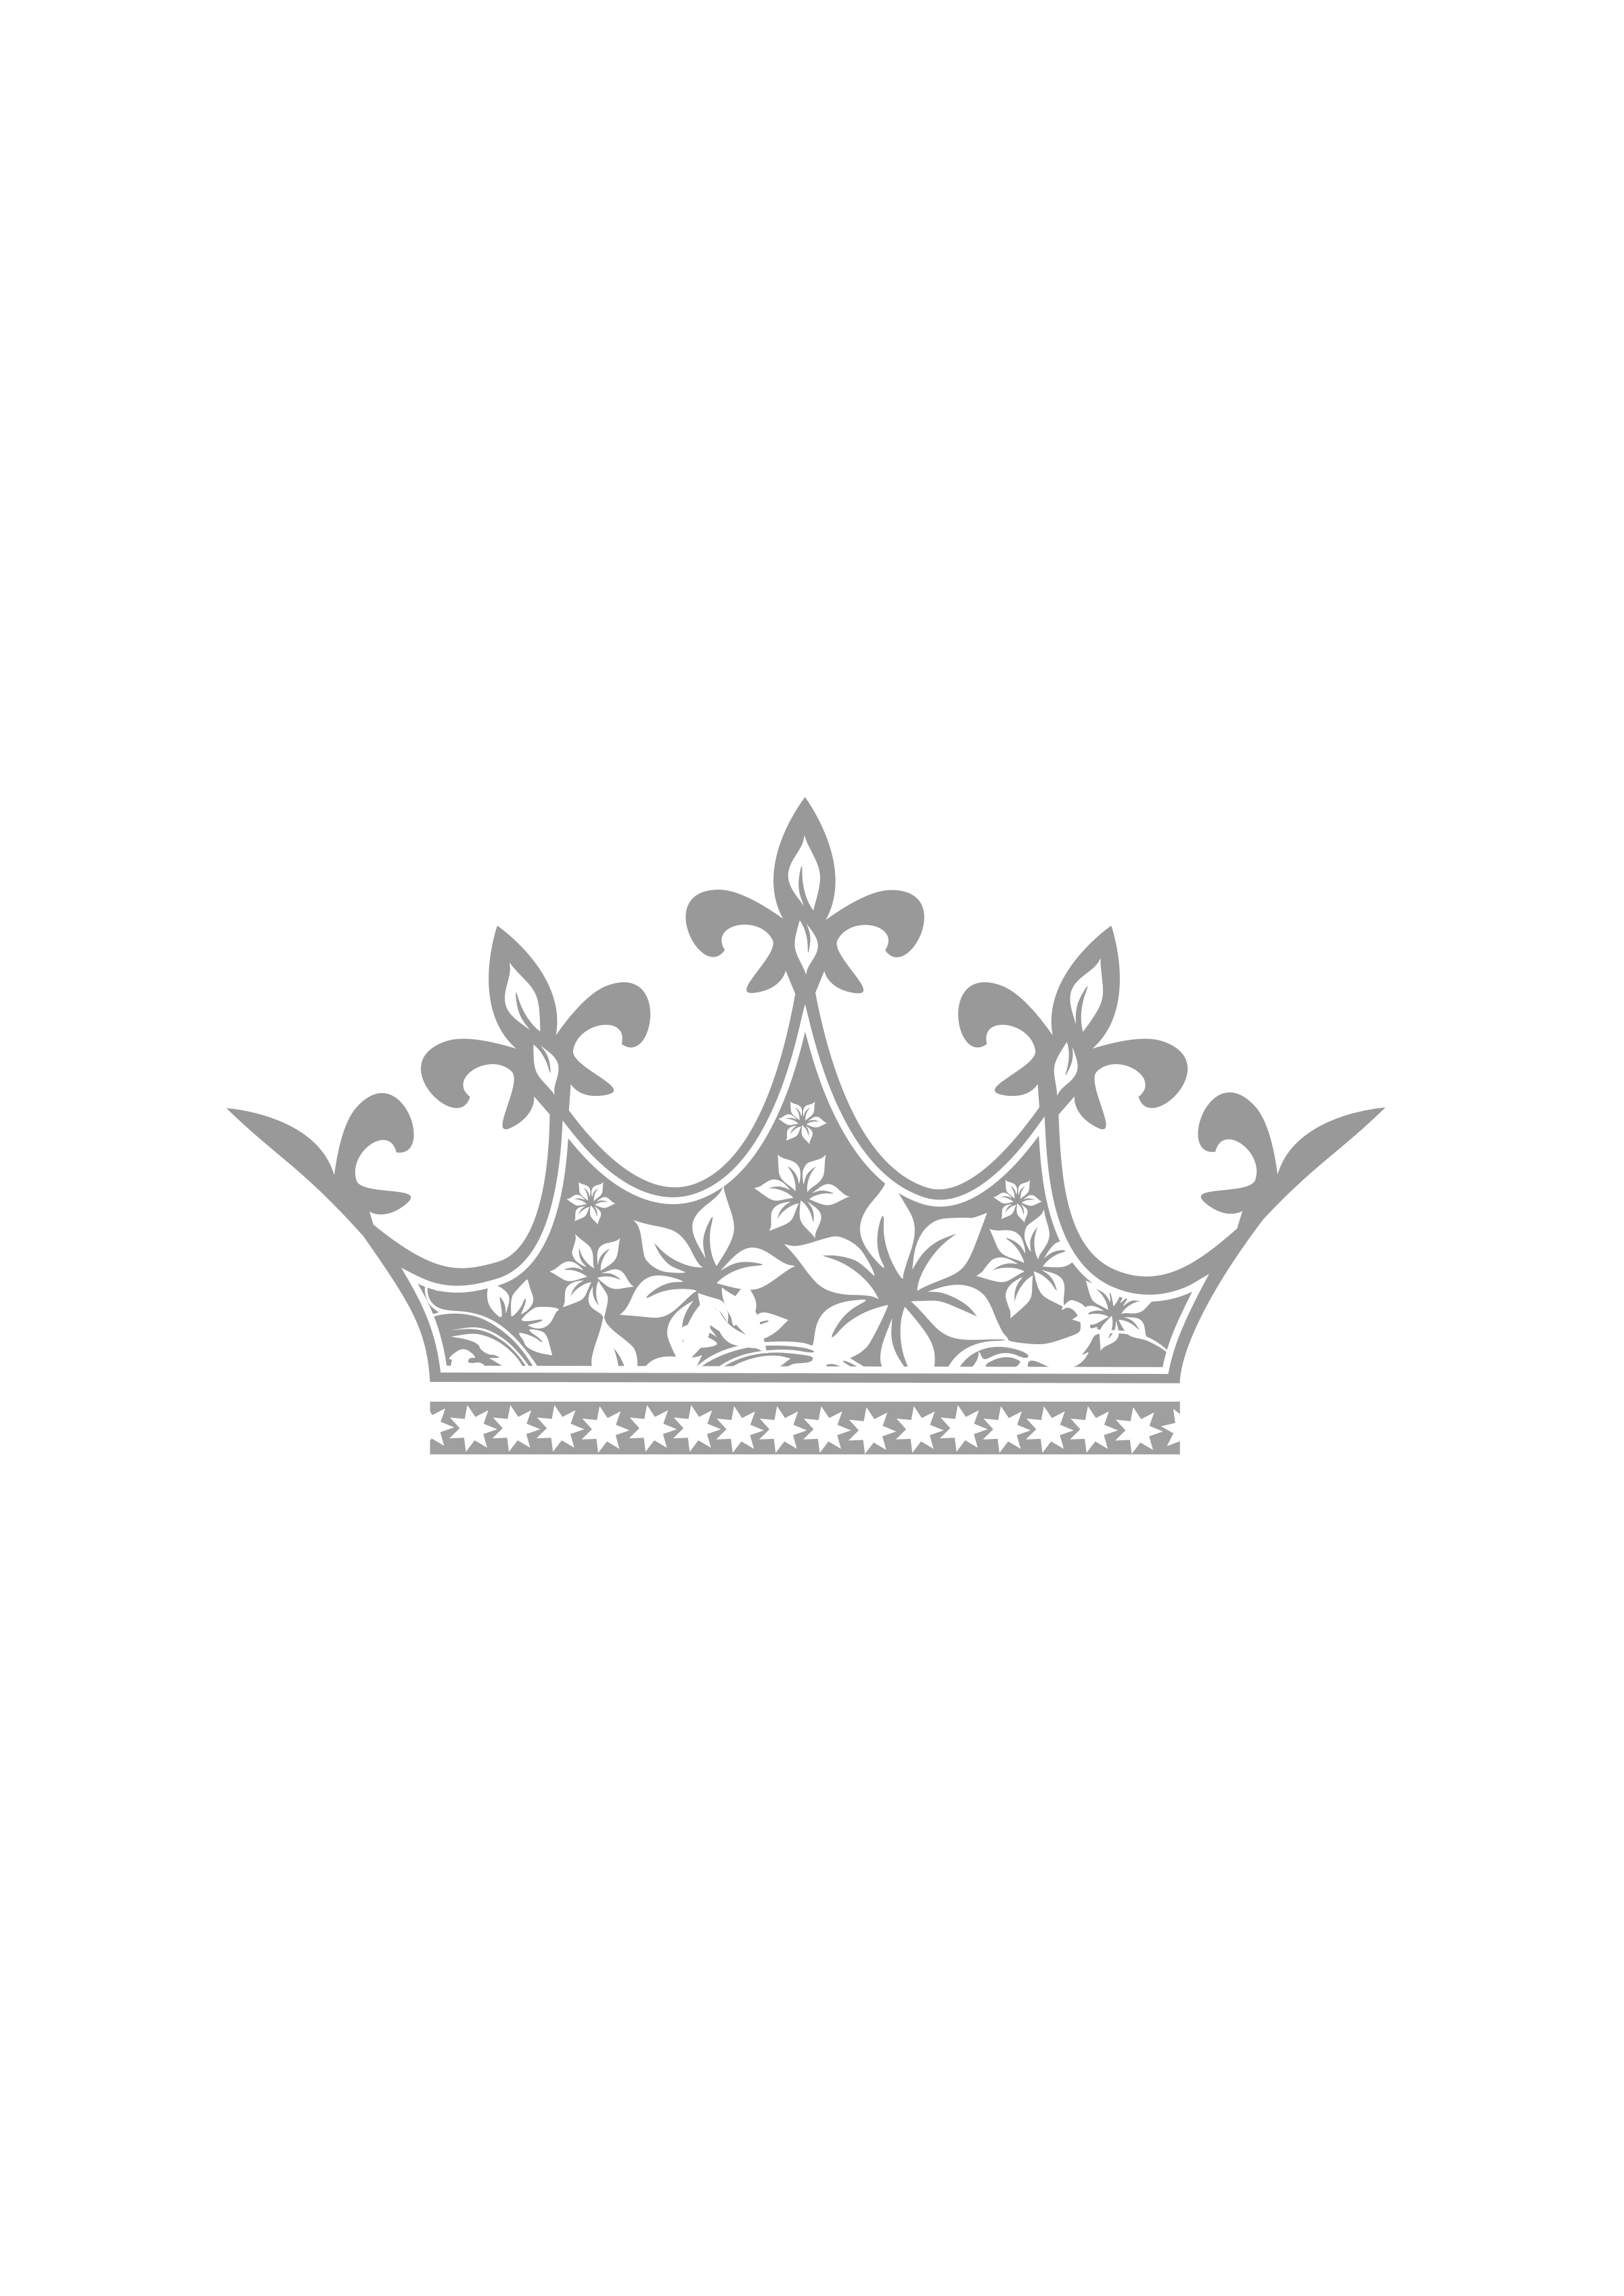 Pageant crown clipart clip black and white stock 28+ Collection of Beauty Queen Crown Clipart | High quality, free ... clip black and white stock